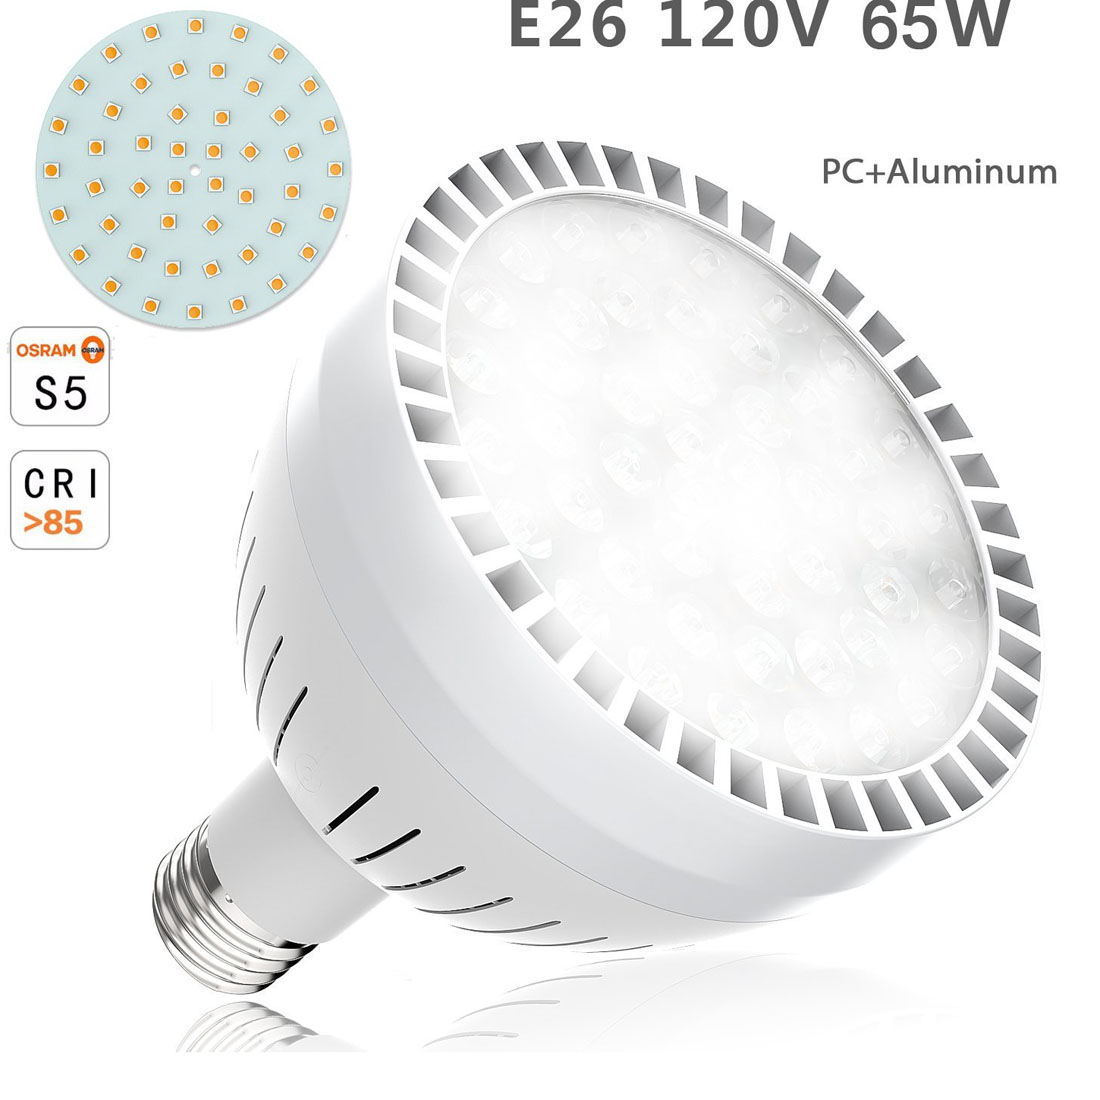 120v 65w Swimming Pool Spa Led Waterproof Light Replacement E26 Base Bulb Lamp Ebay